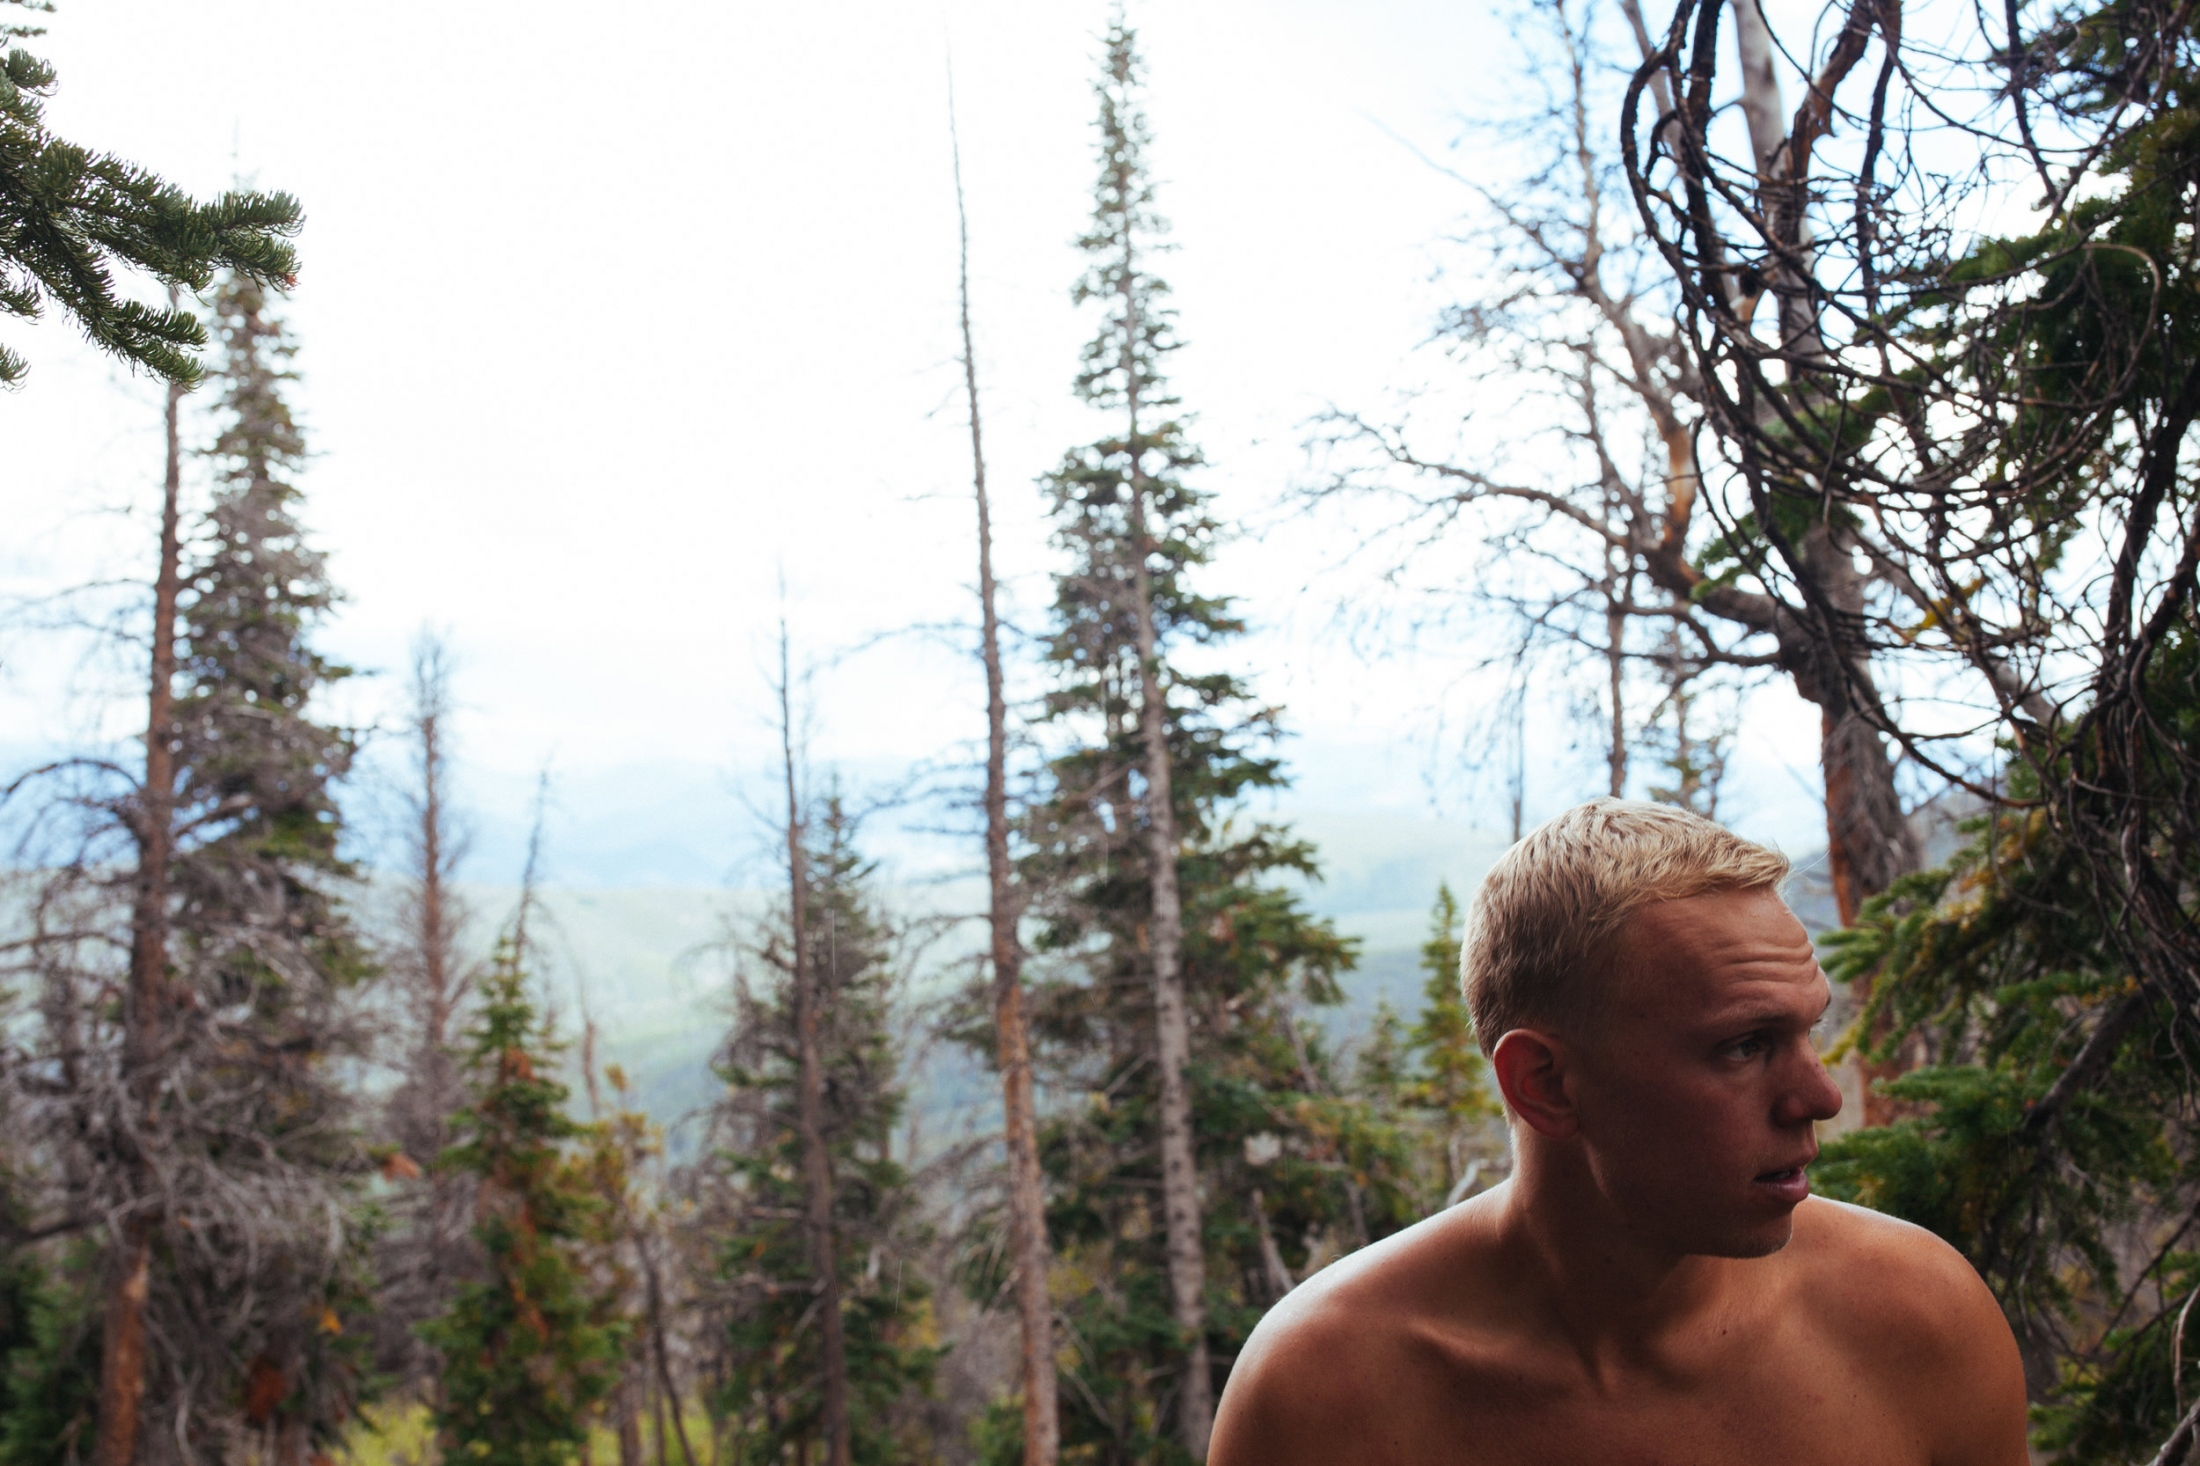 Taylor seeking shelter from the thunderstorm over Mount Royal, White River National Forest, CO.